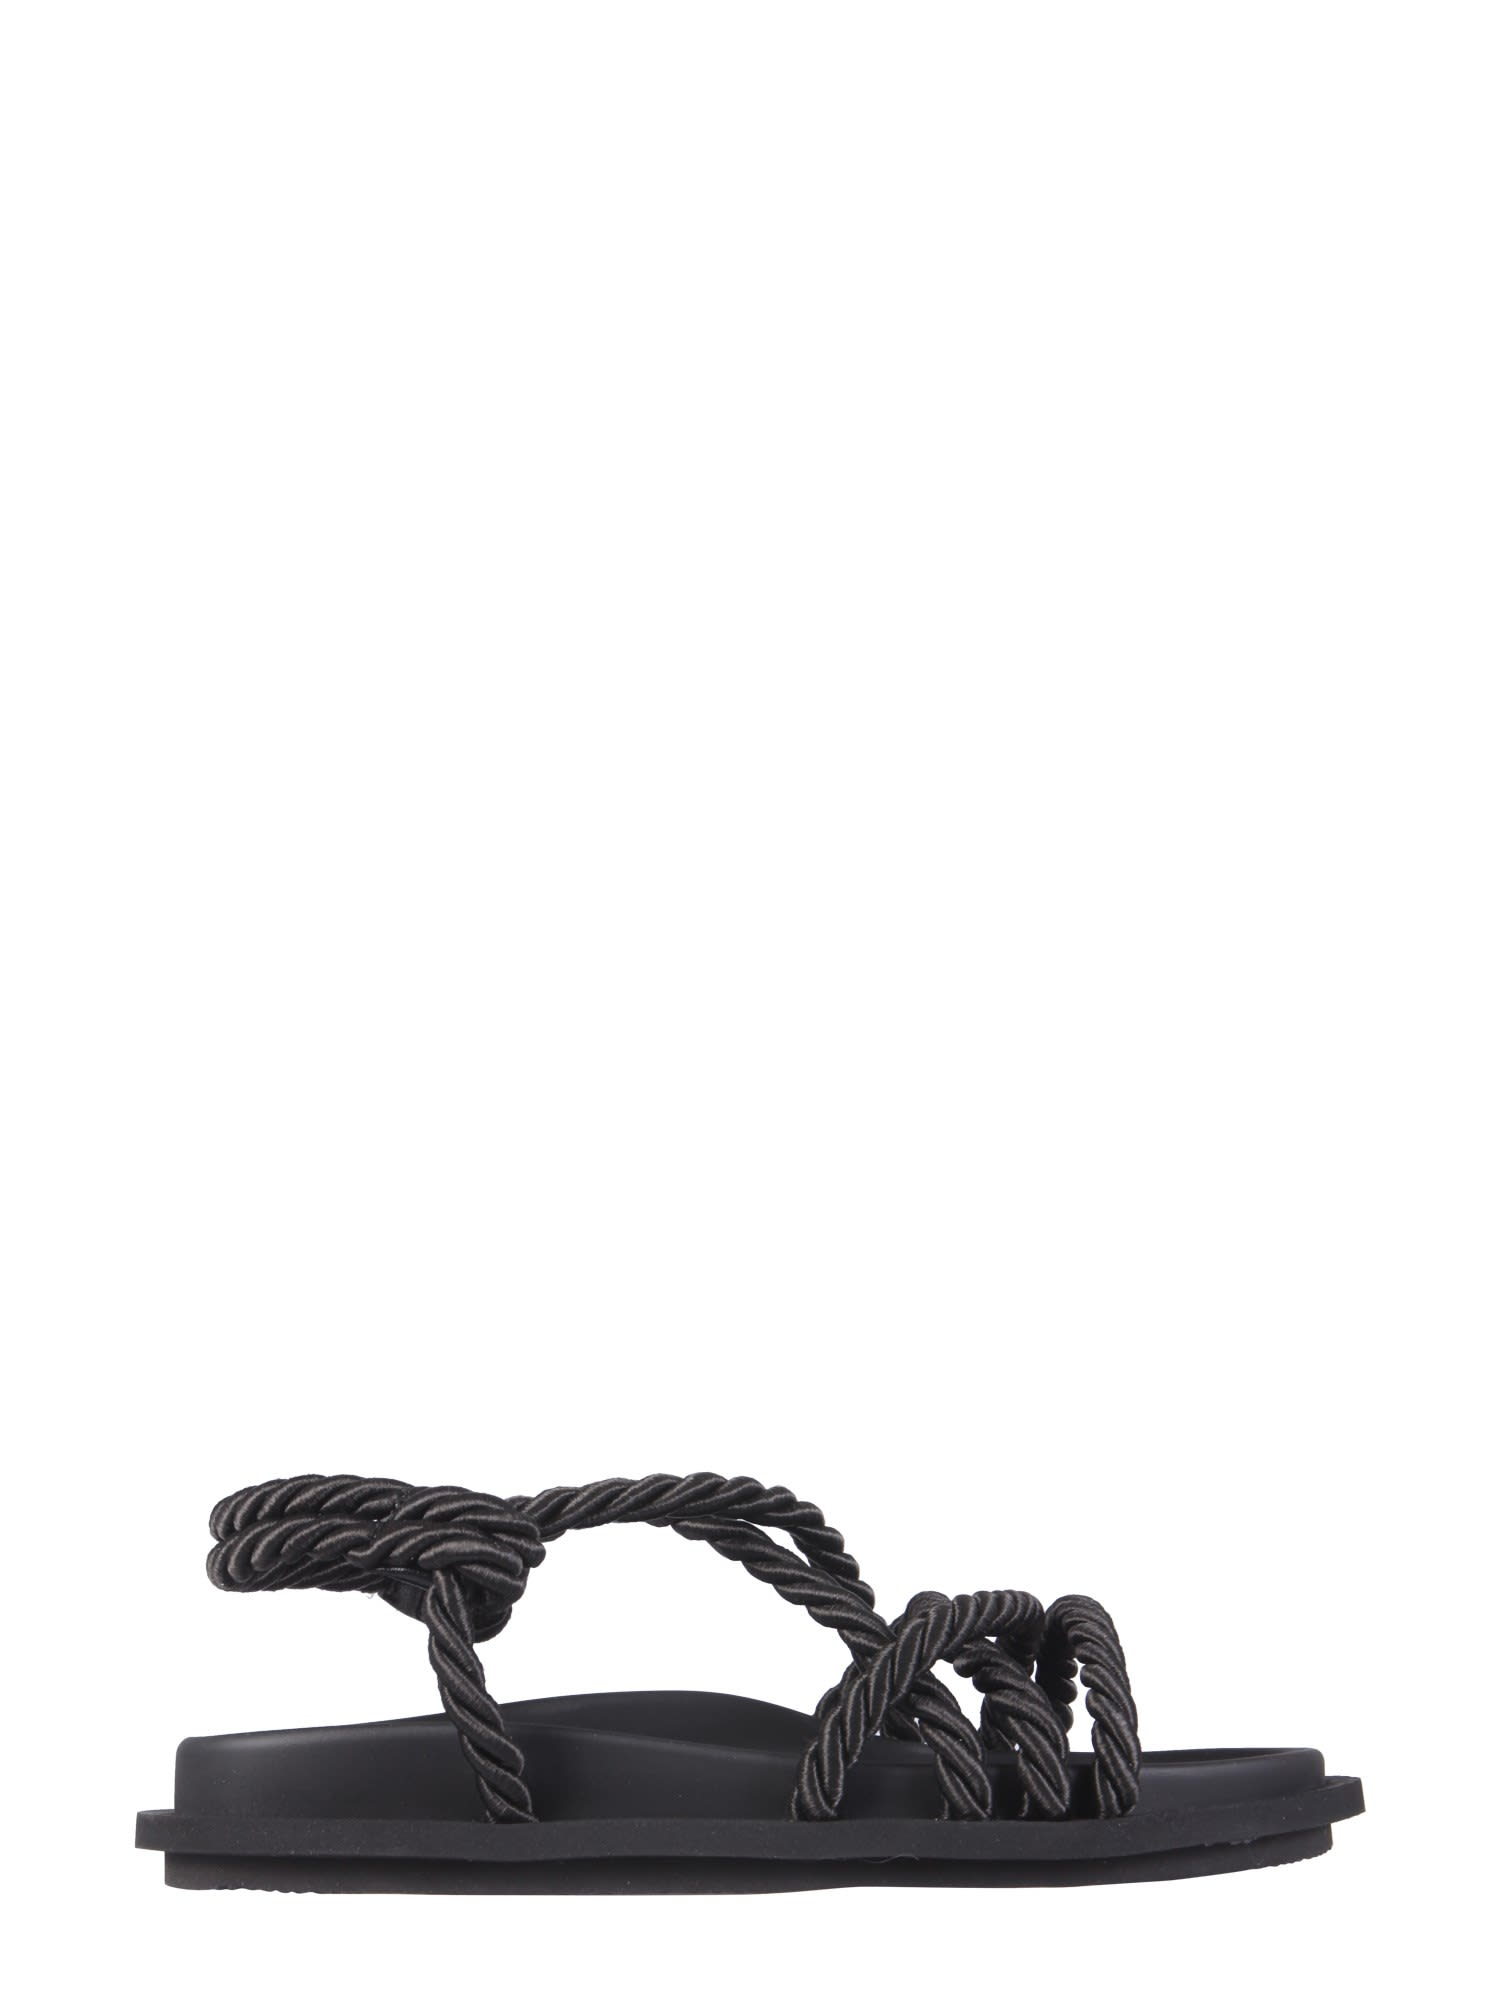 Msgm SANDALS WITH CORDS